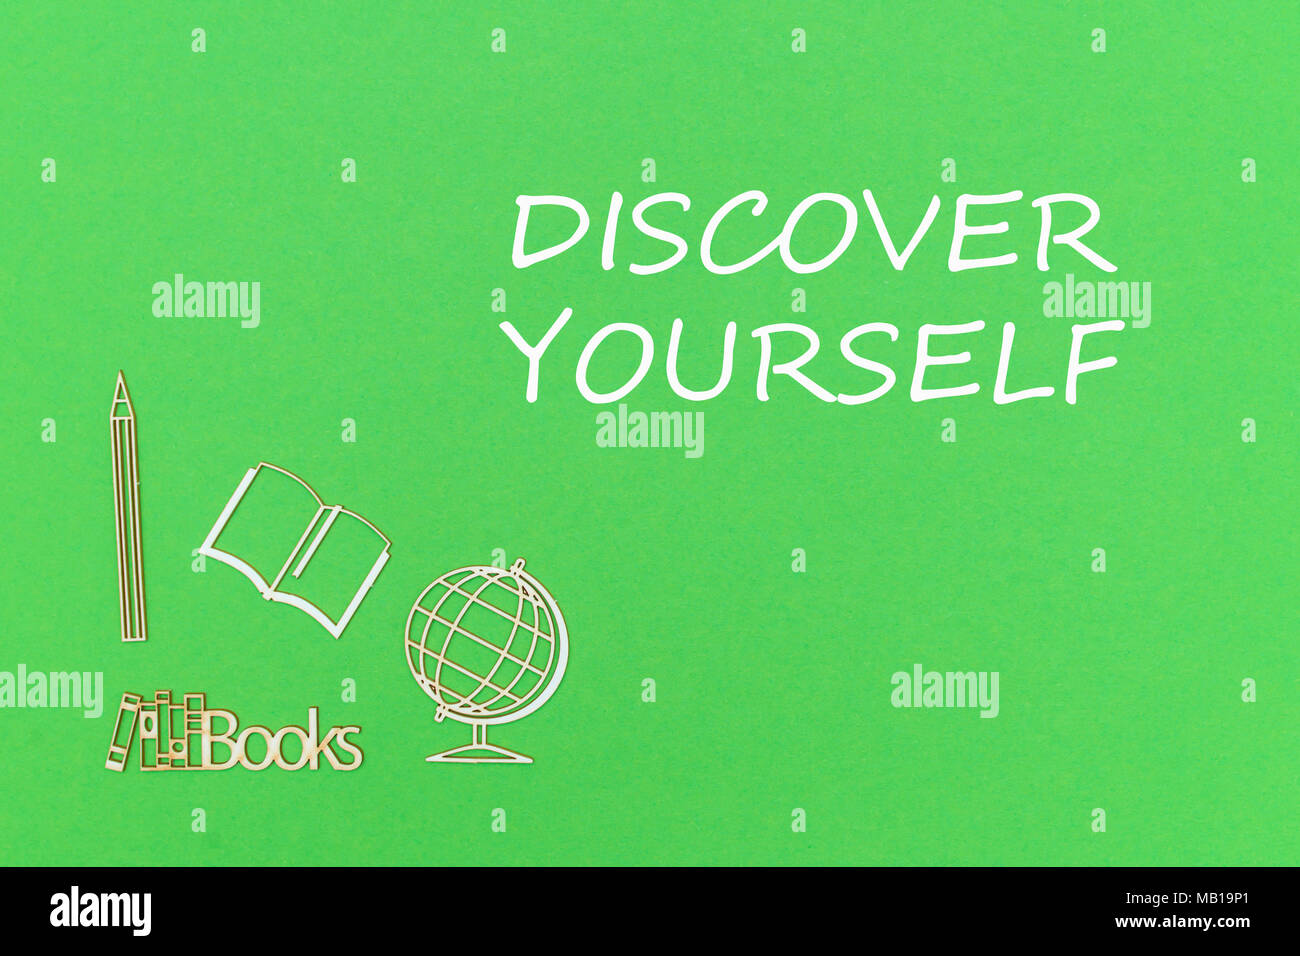 concept school for kids, text discover yourself, school supplies wooden miniatures on green backboard - Stock Image